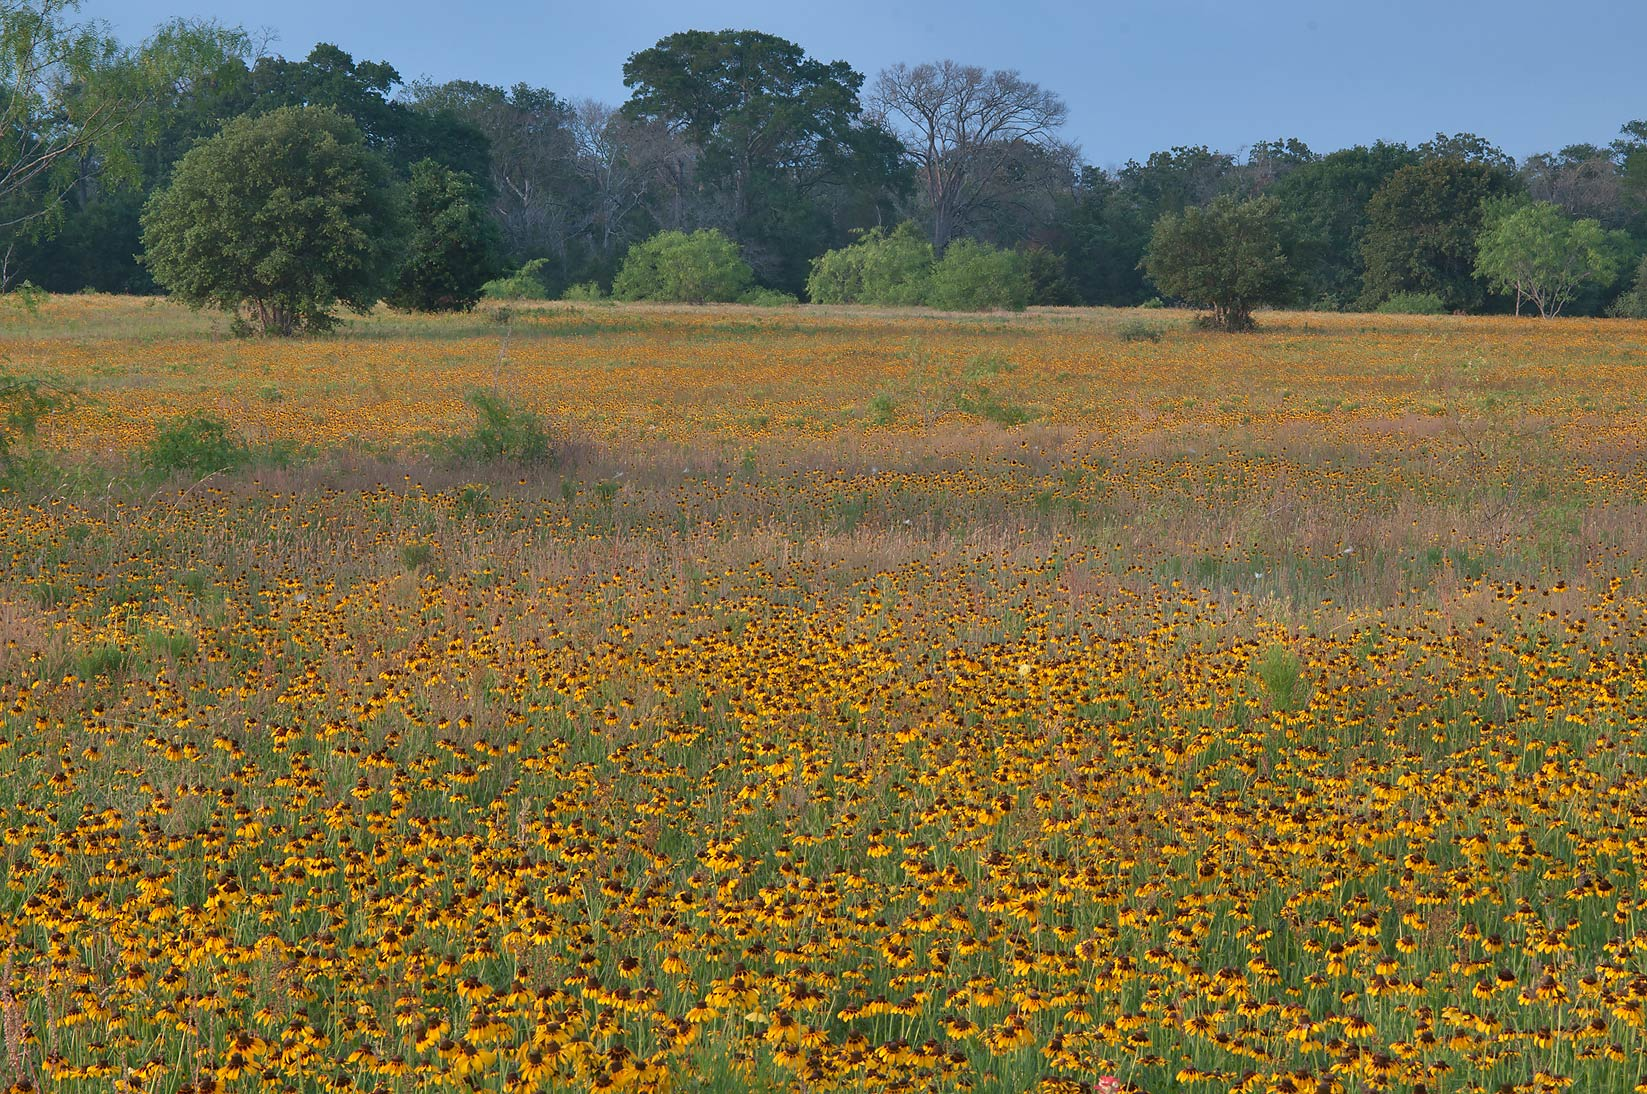 Field of Black Eyed Susan flowers near Rd. FM 60 near Lake Somerville. Texas